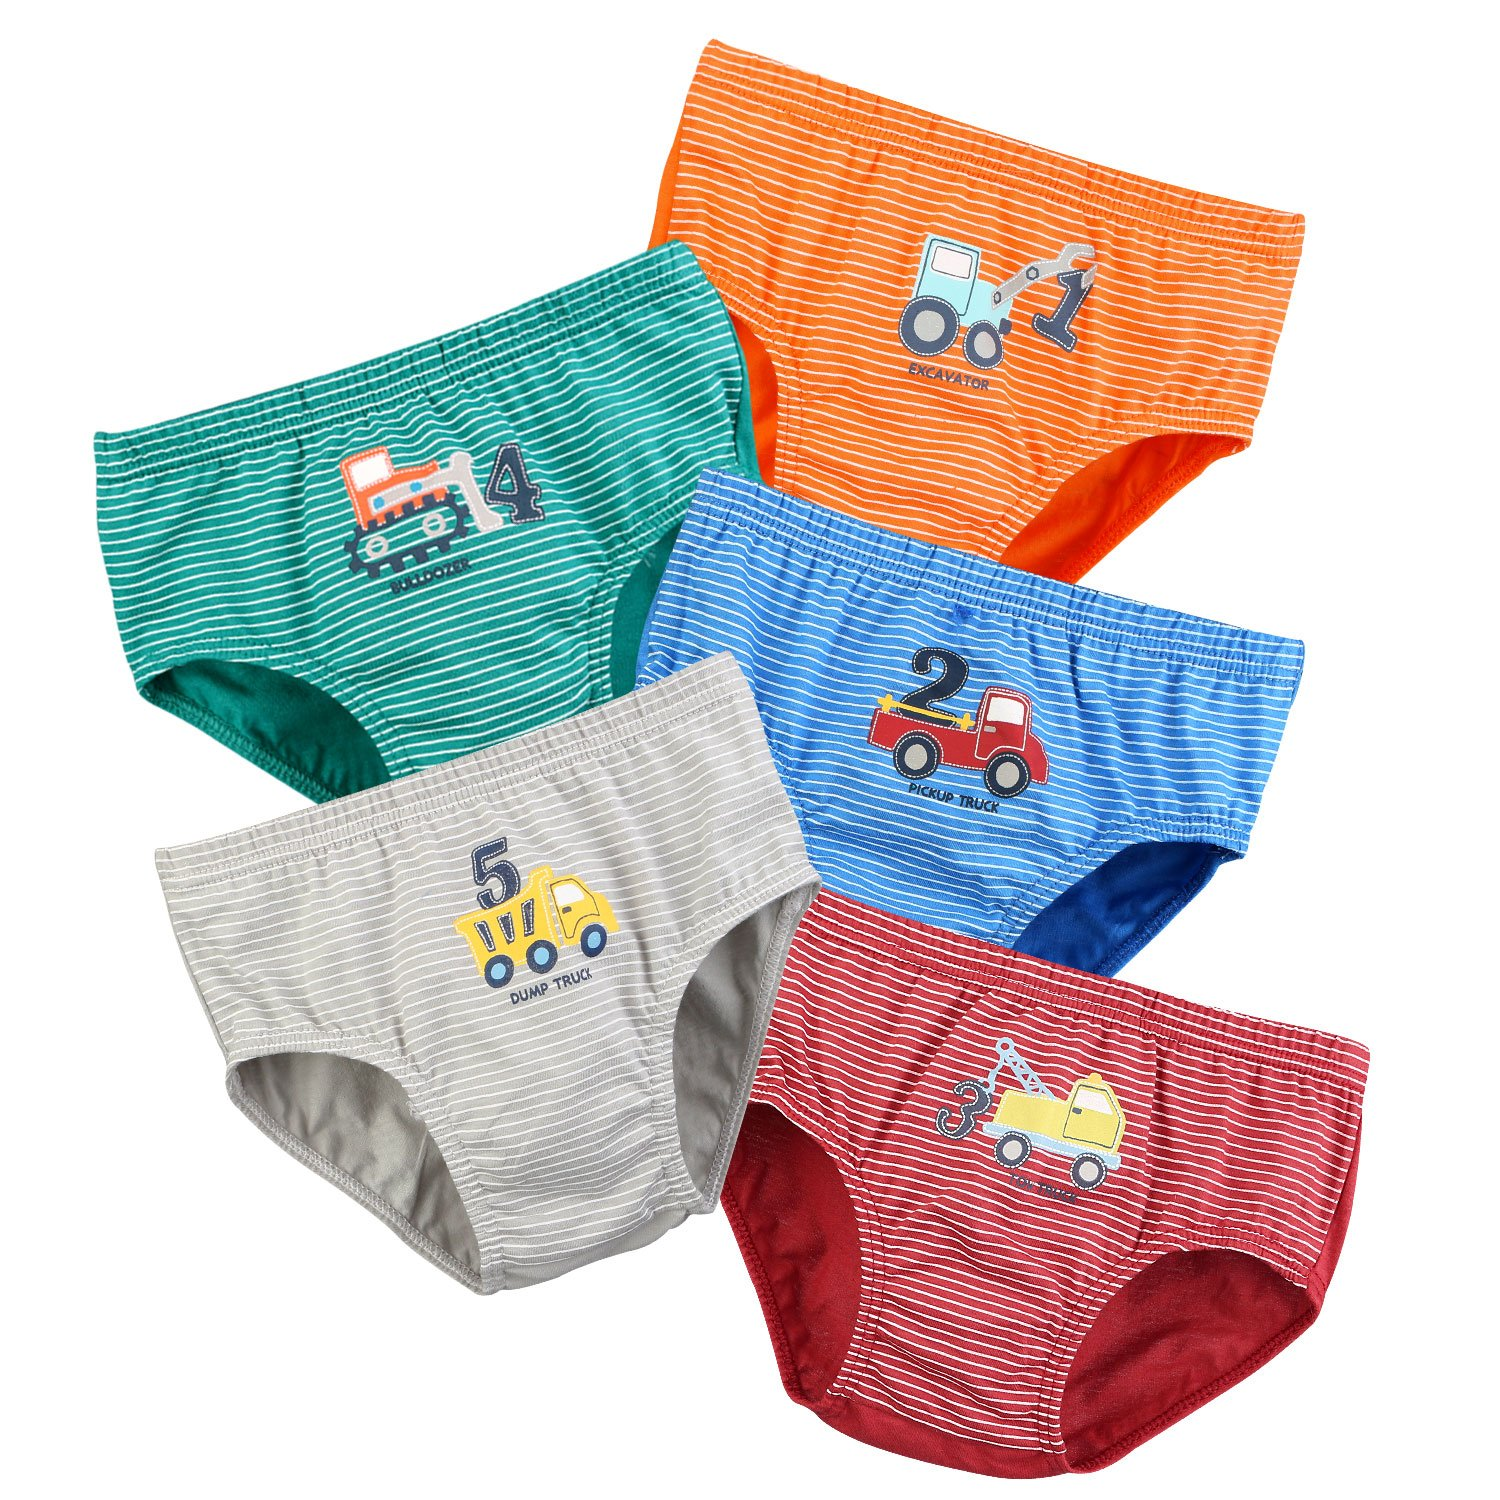 Boys Underwear,BOOPH Little boys Toddlers Cotton Underwear Briefs Car 5 Pack for Kids truck